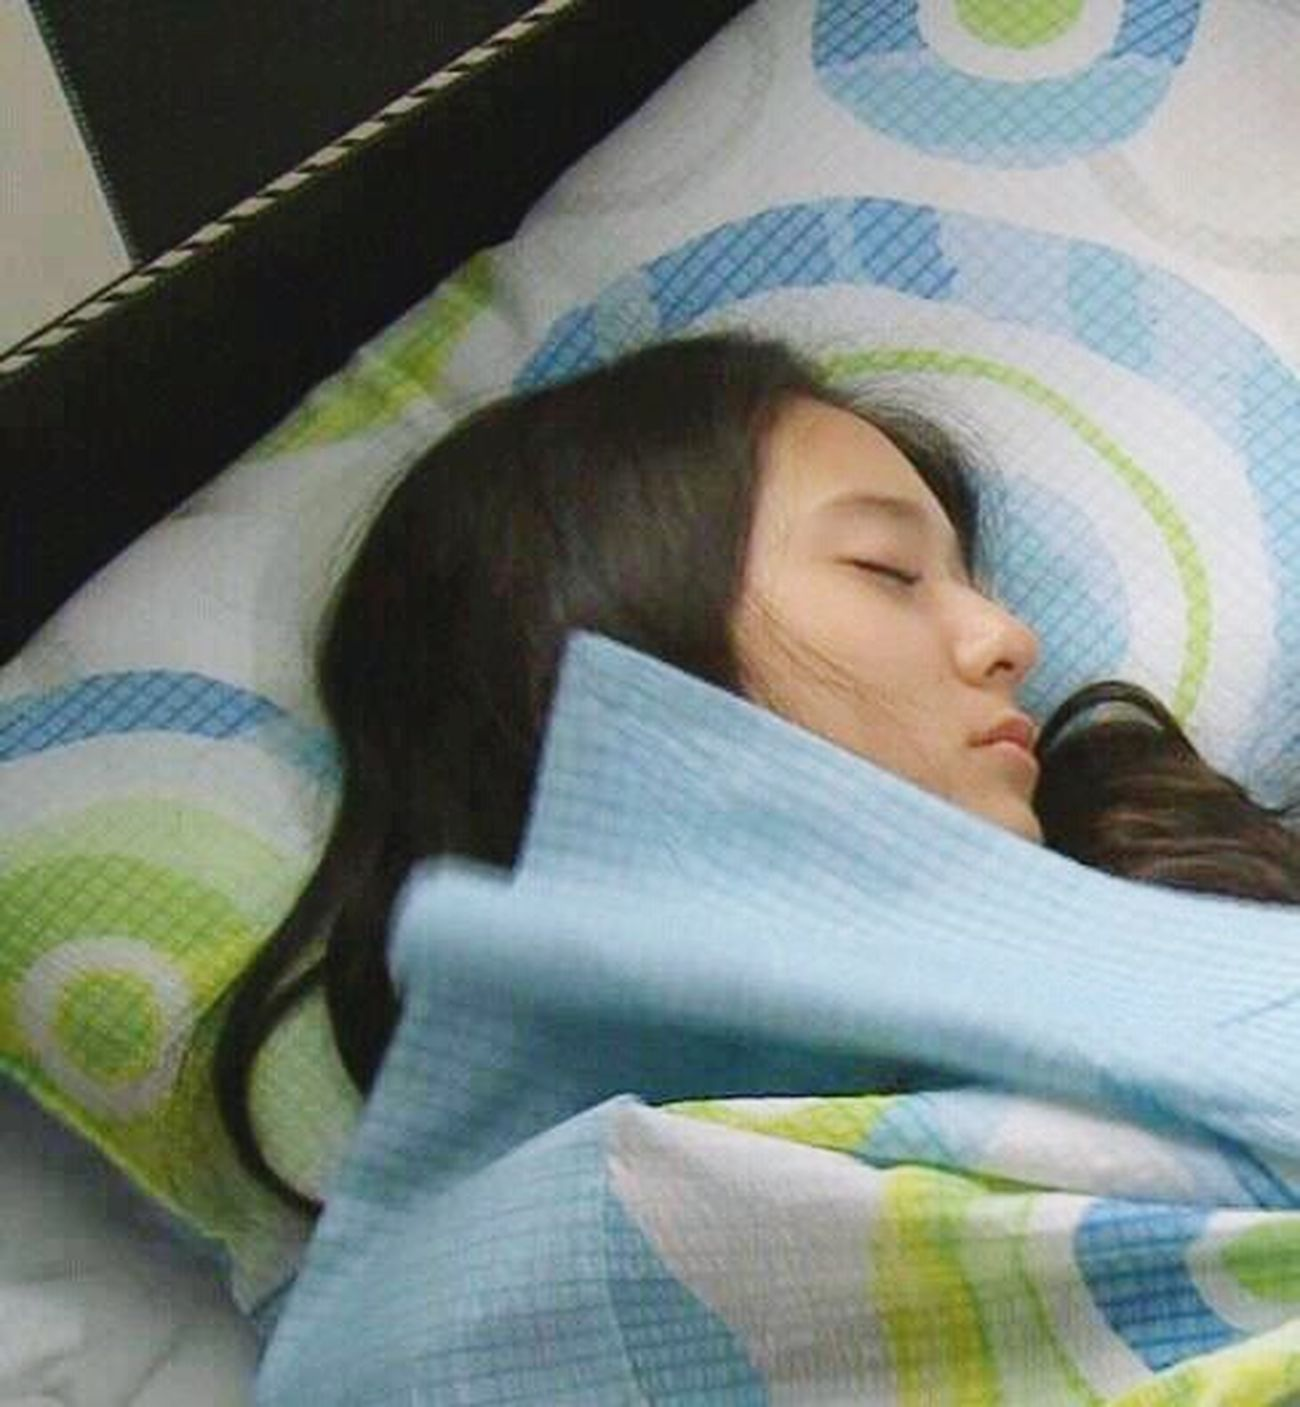 Sleeping beauty Krystal Jung